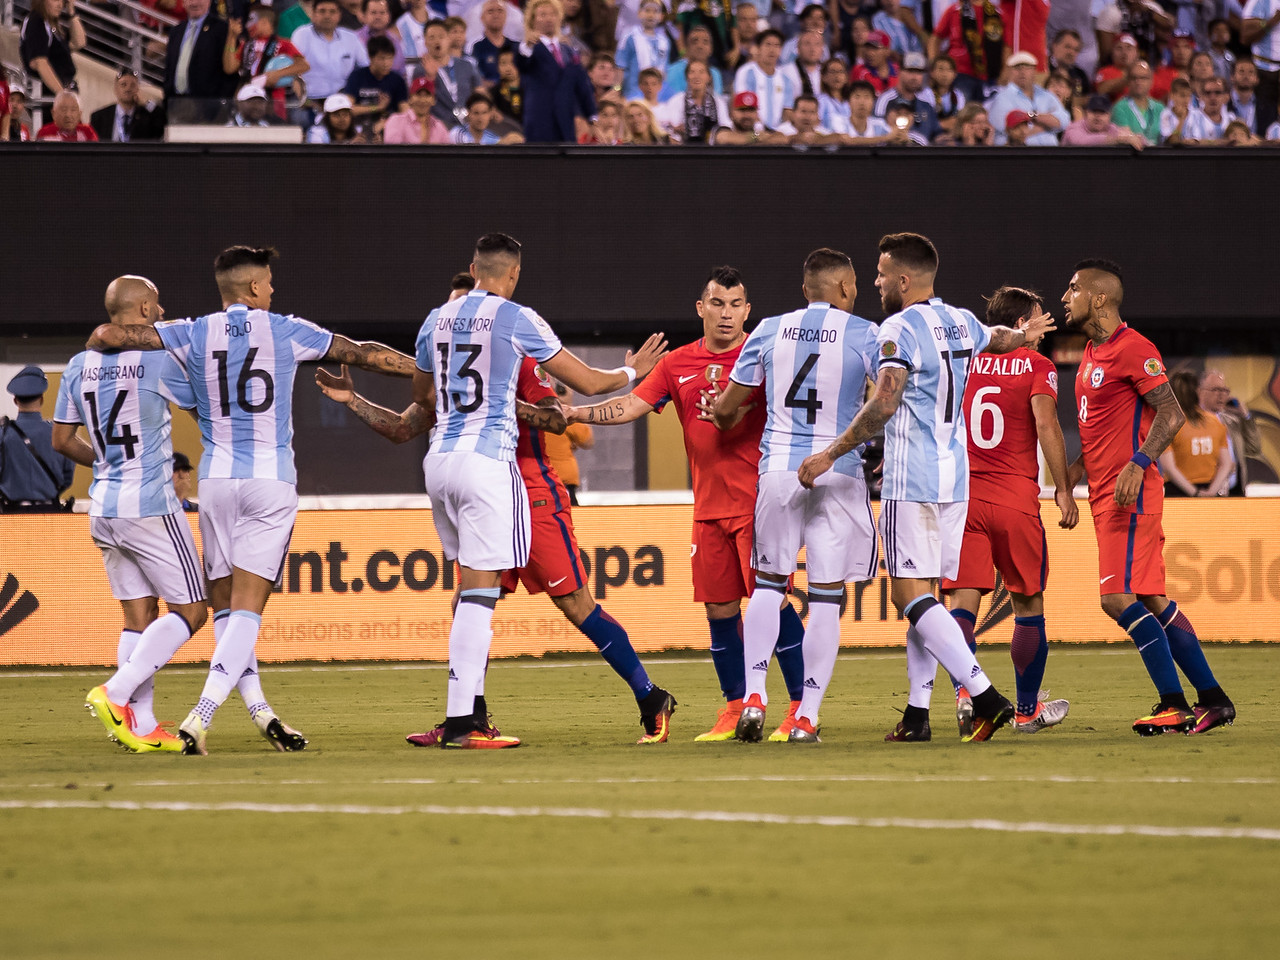 Argentina and Chile players discuss a play